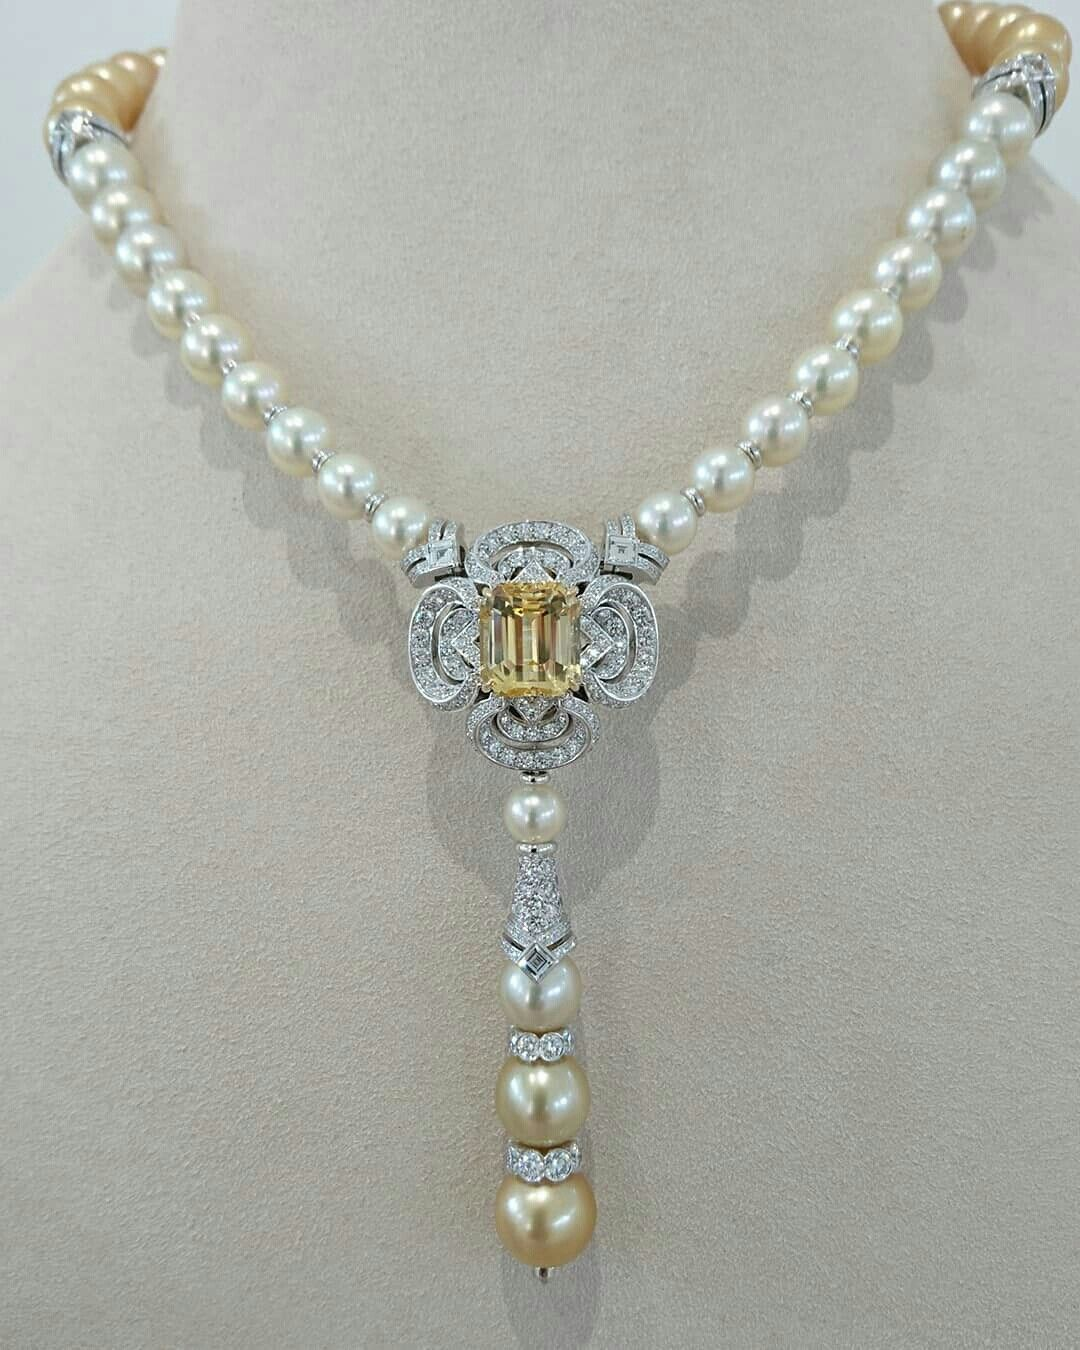 05dcb2c14ee5 The new Conquétes Regalia collection by Louis Vuitton Pearl And Diamond  Necklace